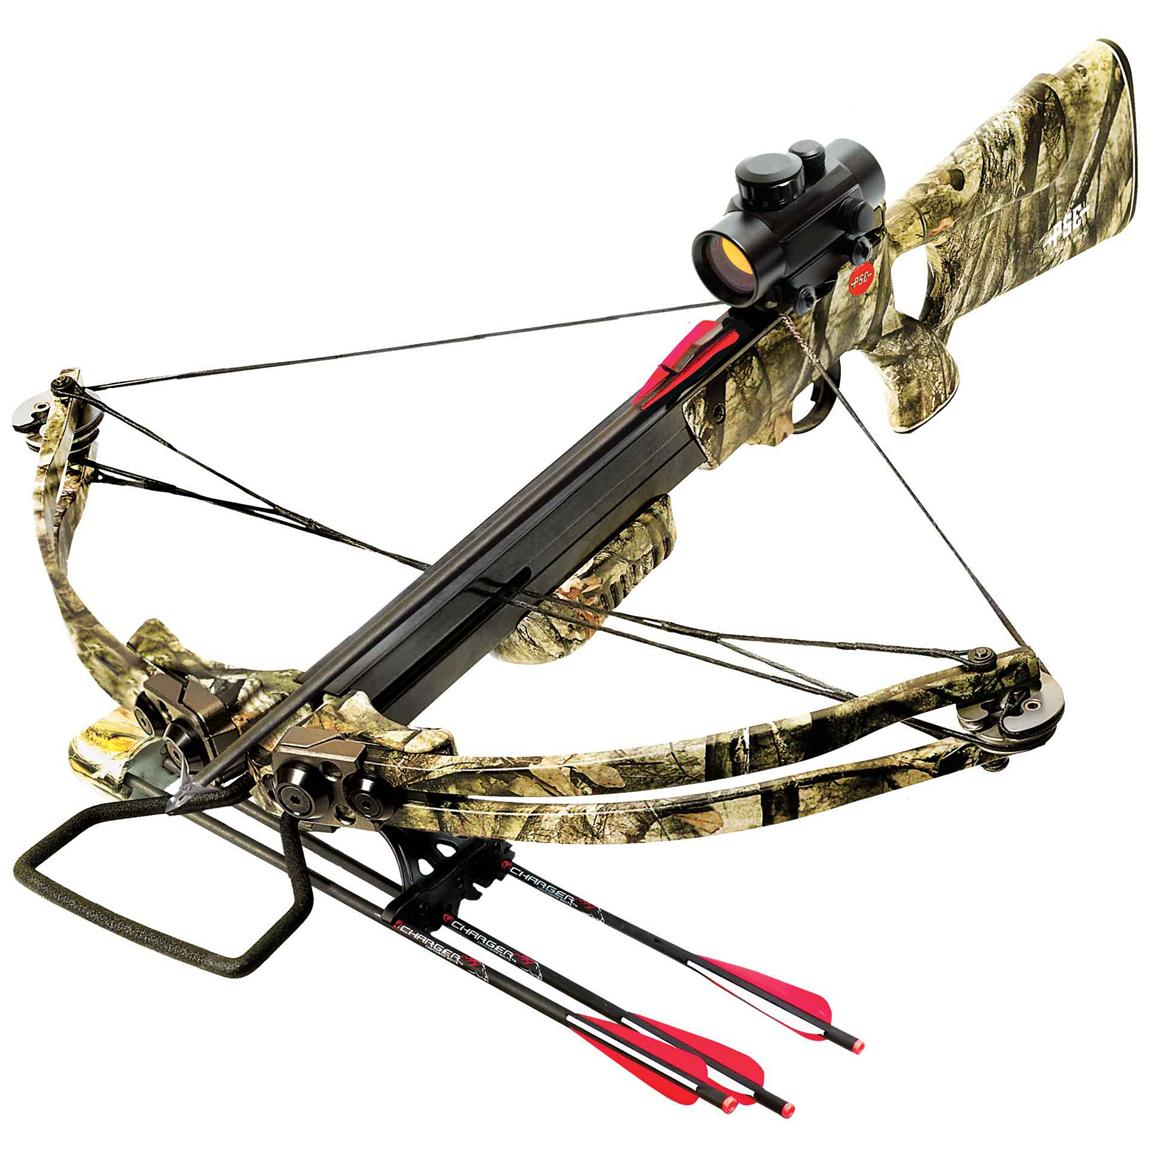 PSE® Reaper™ Crossbow Package with Red Dot Scope